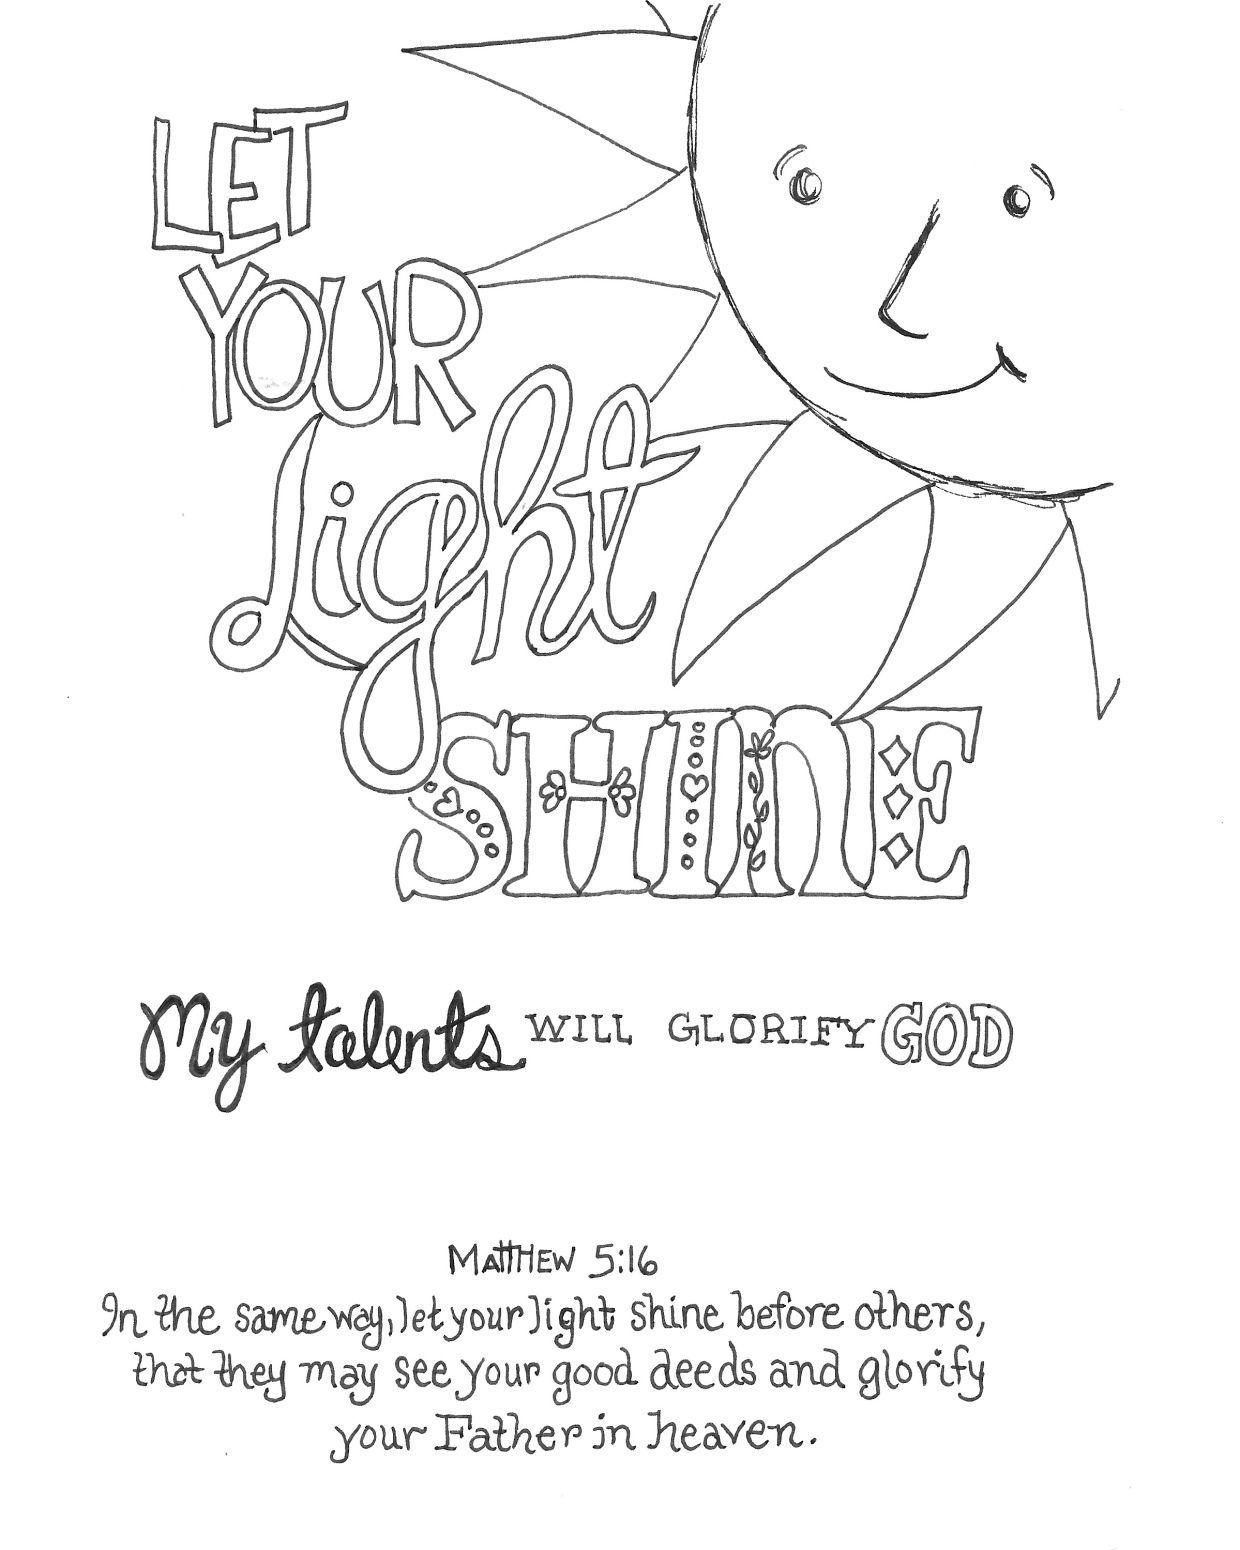 shine for jesus coloring pages | Let Your Light Shine - Coloring Page - SundaySchoolist